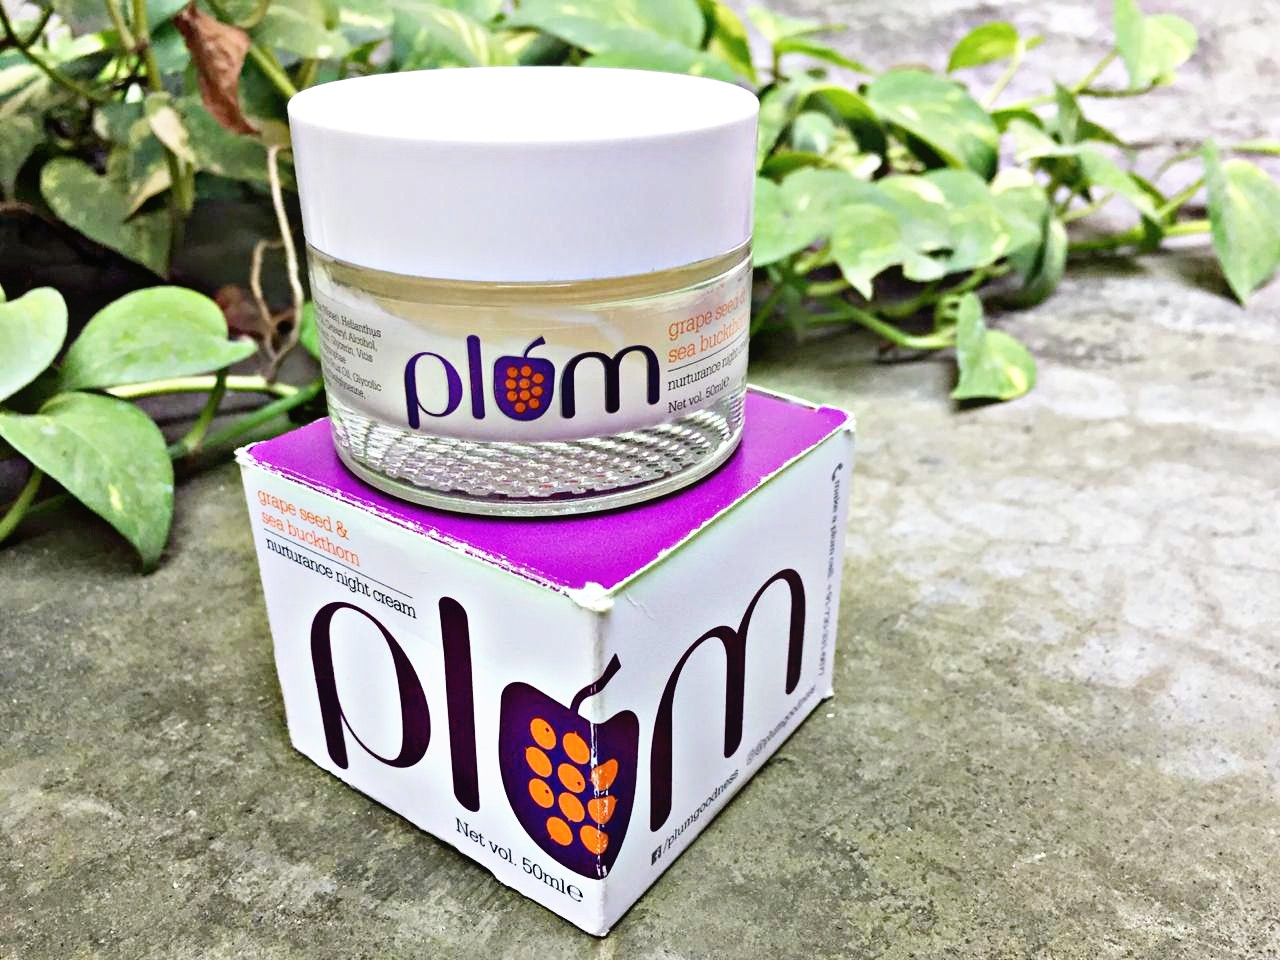 Plum Grape Seed & Sea Buckthorn Night Cream Review